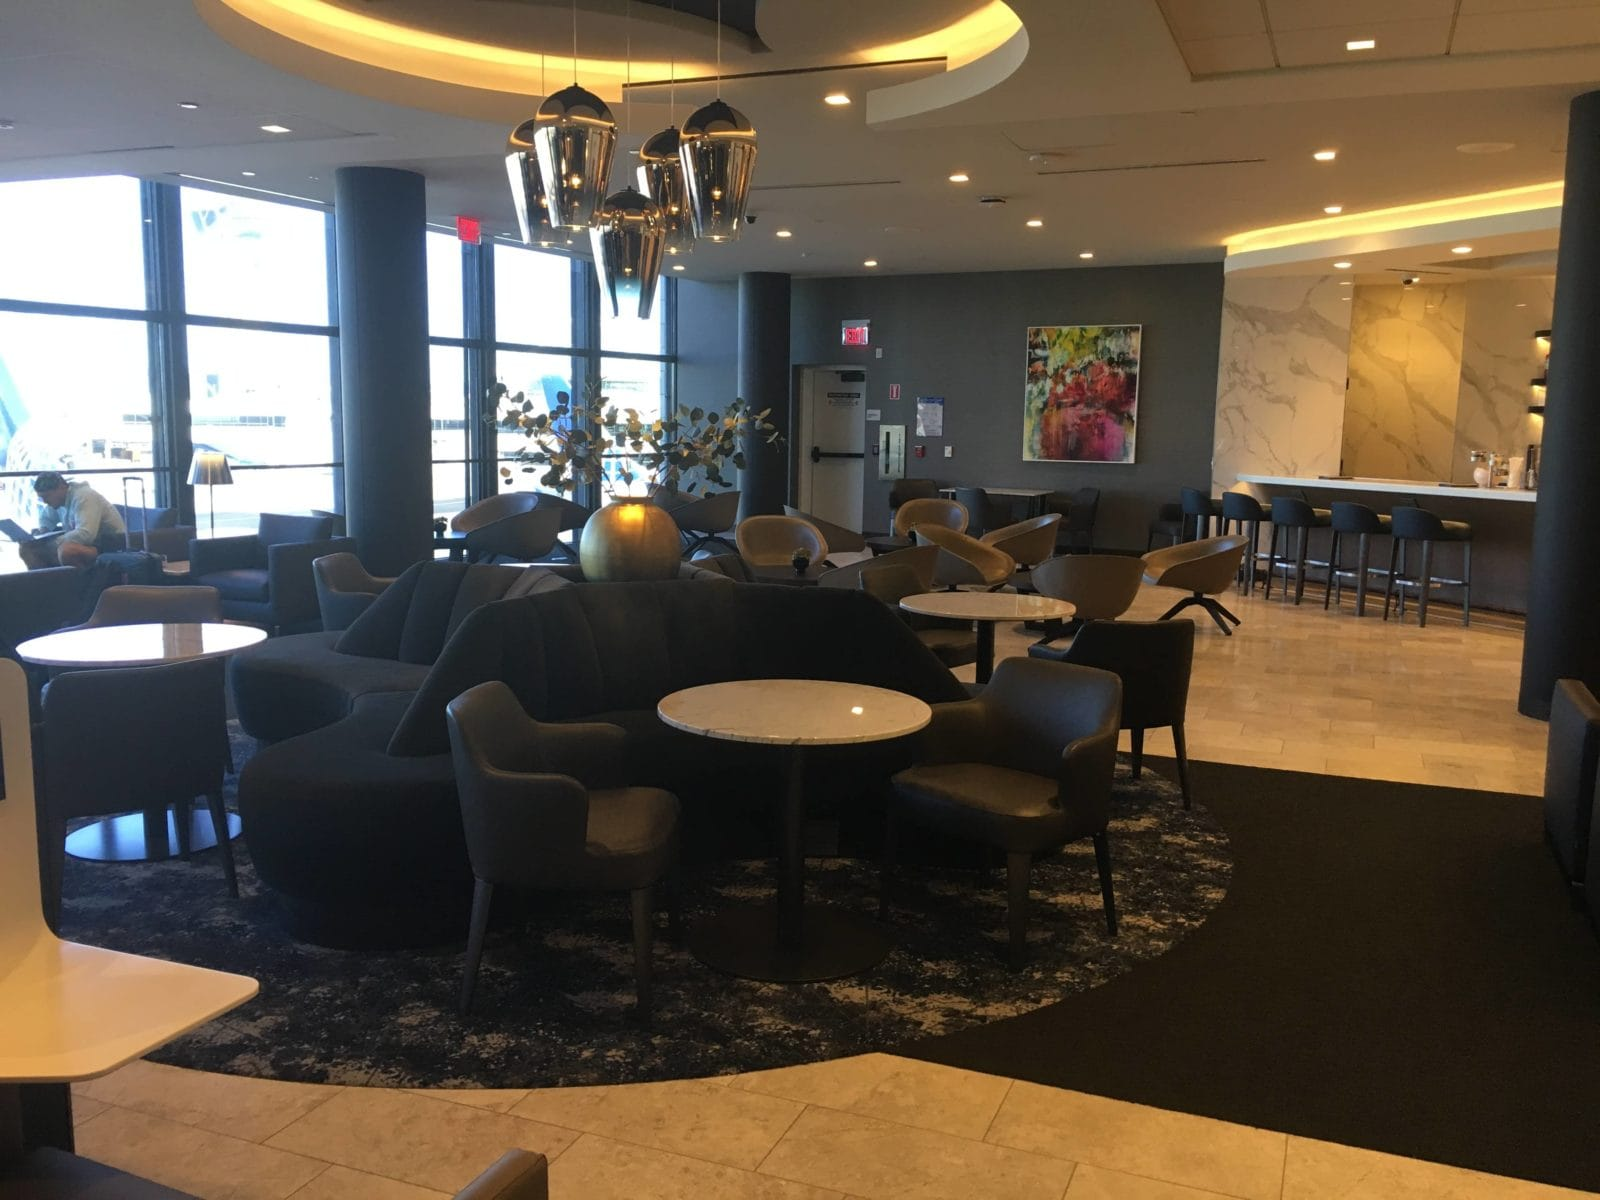 United Polaris Lounge LAX - Sofa